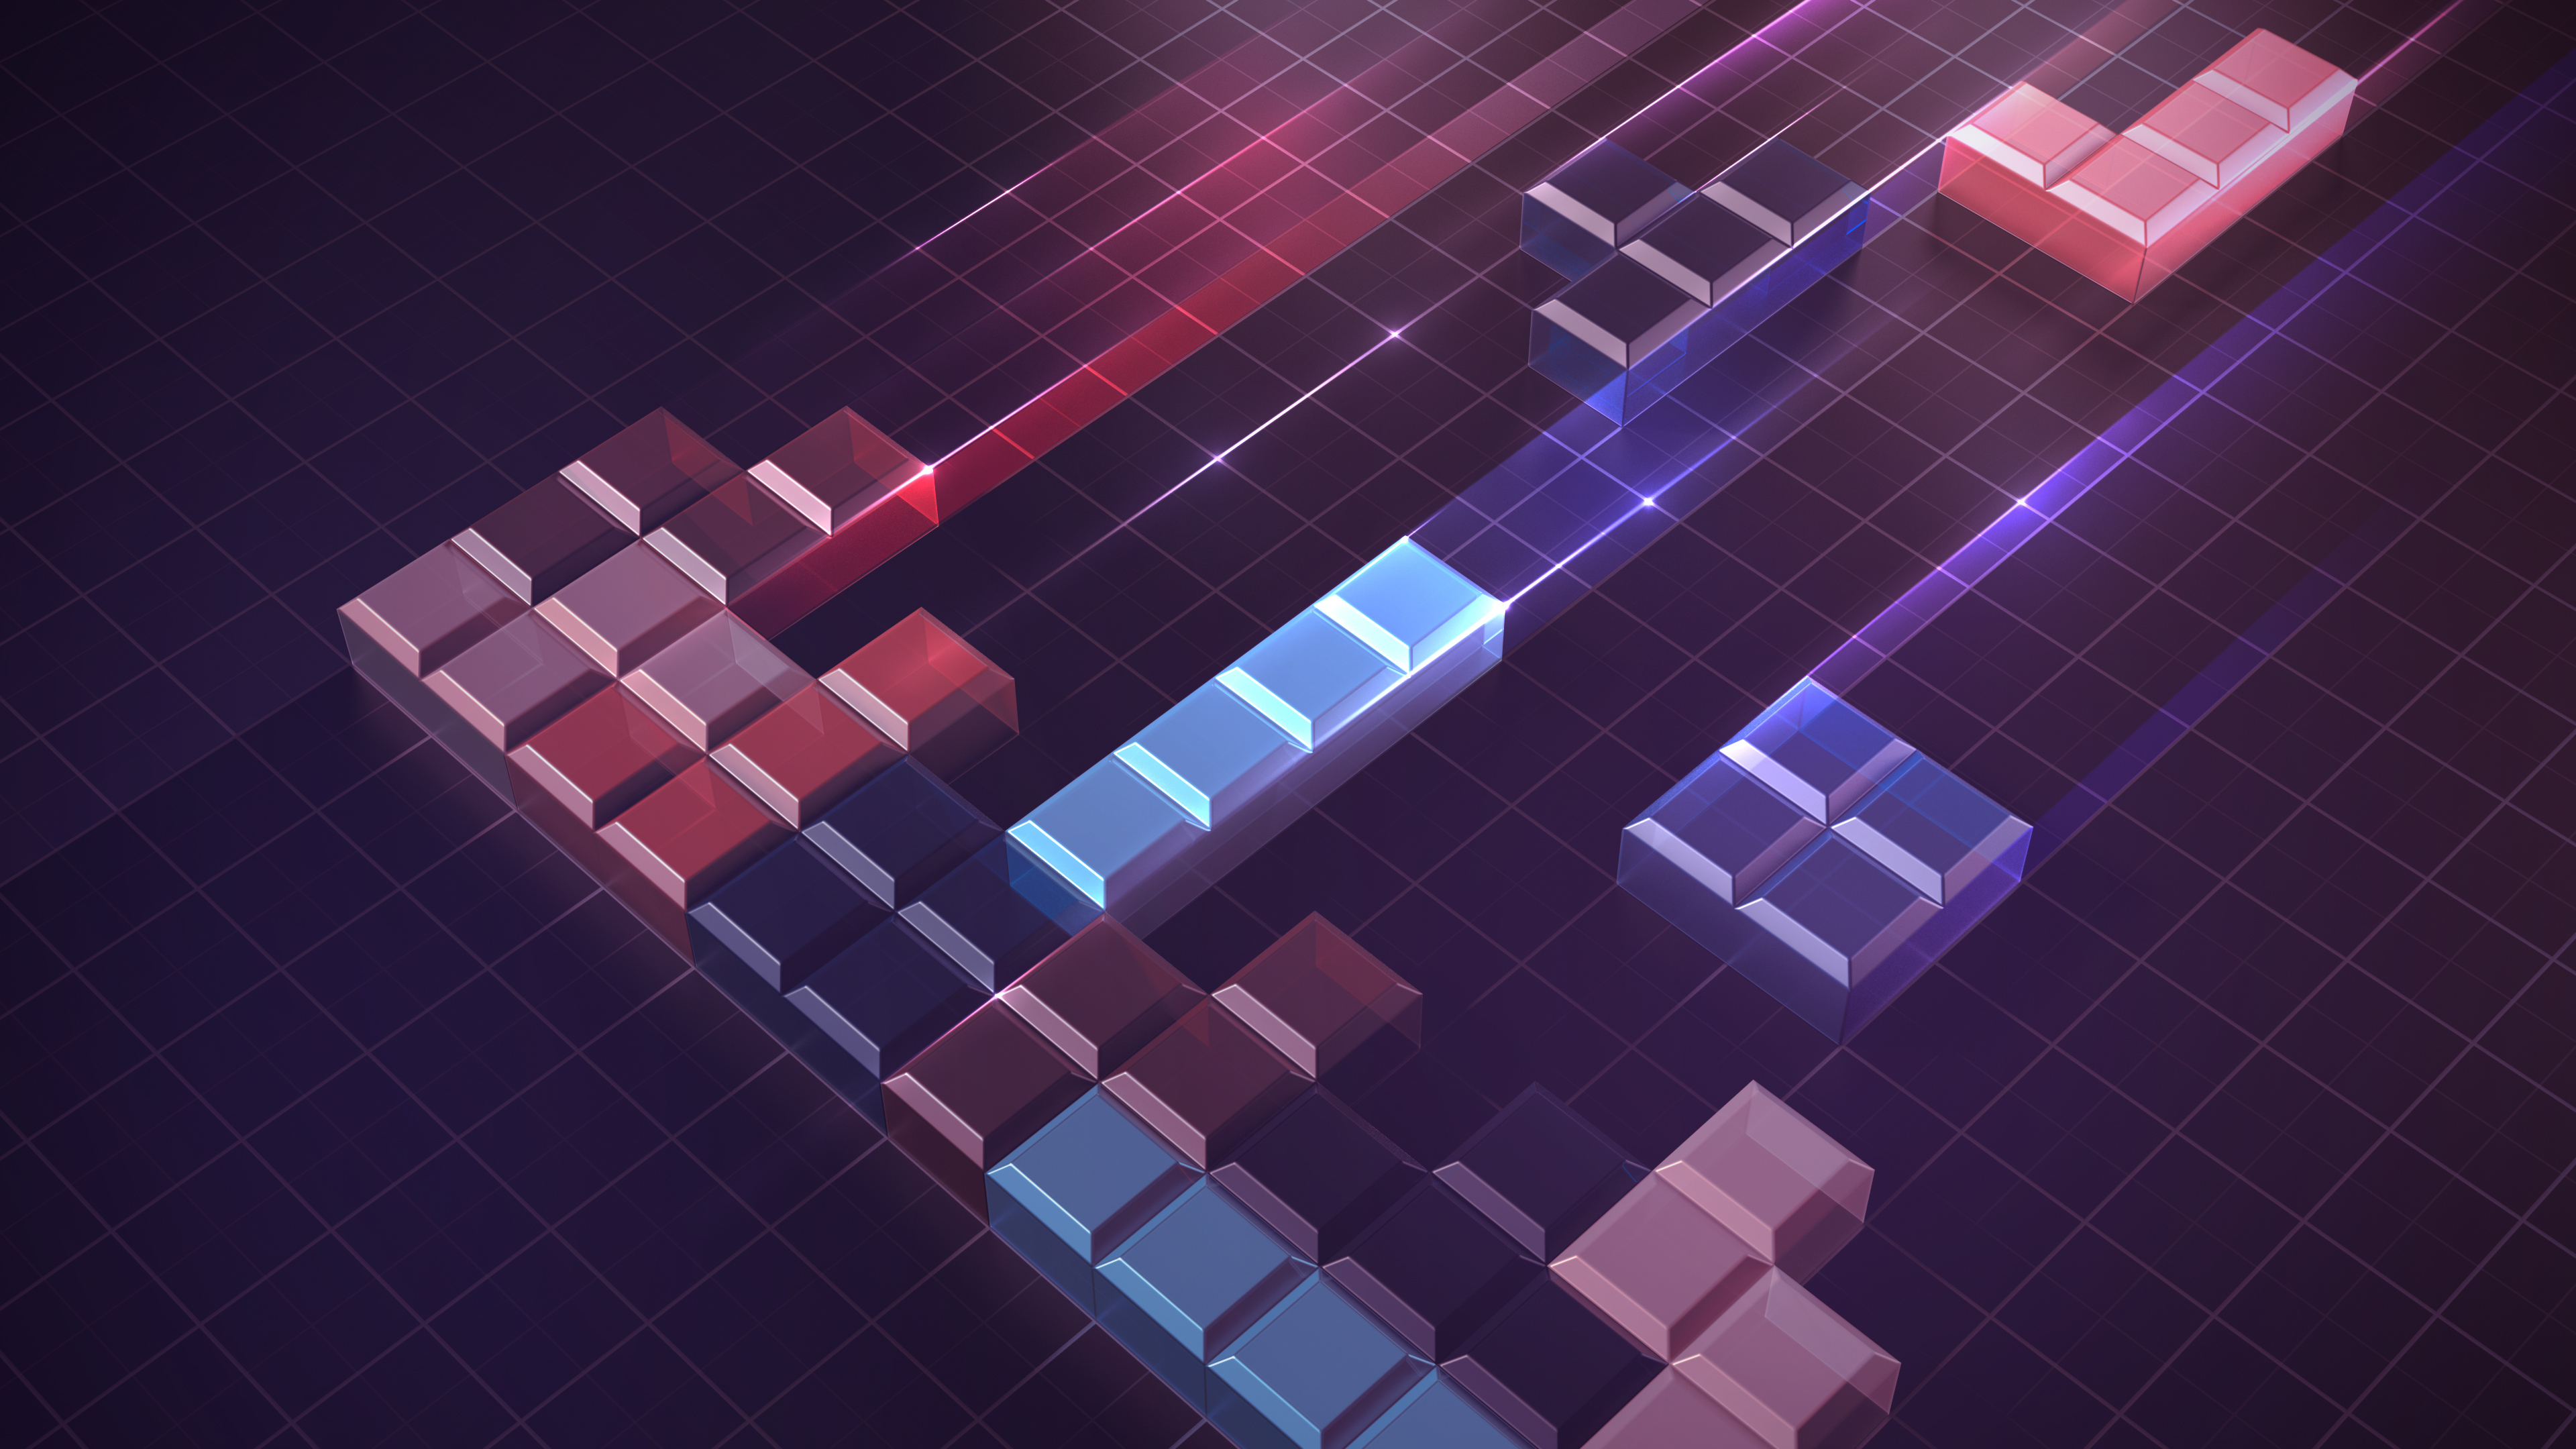 Tetris blocks concept of building and problem solving